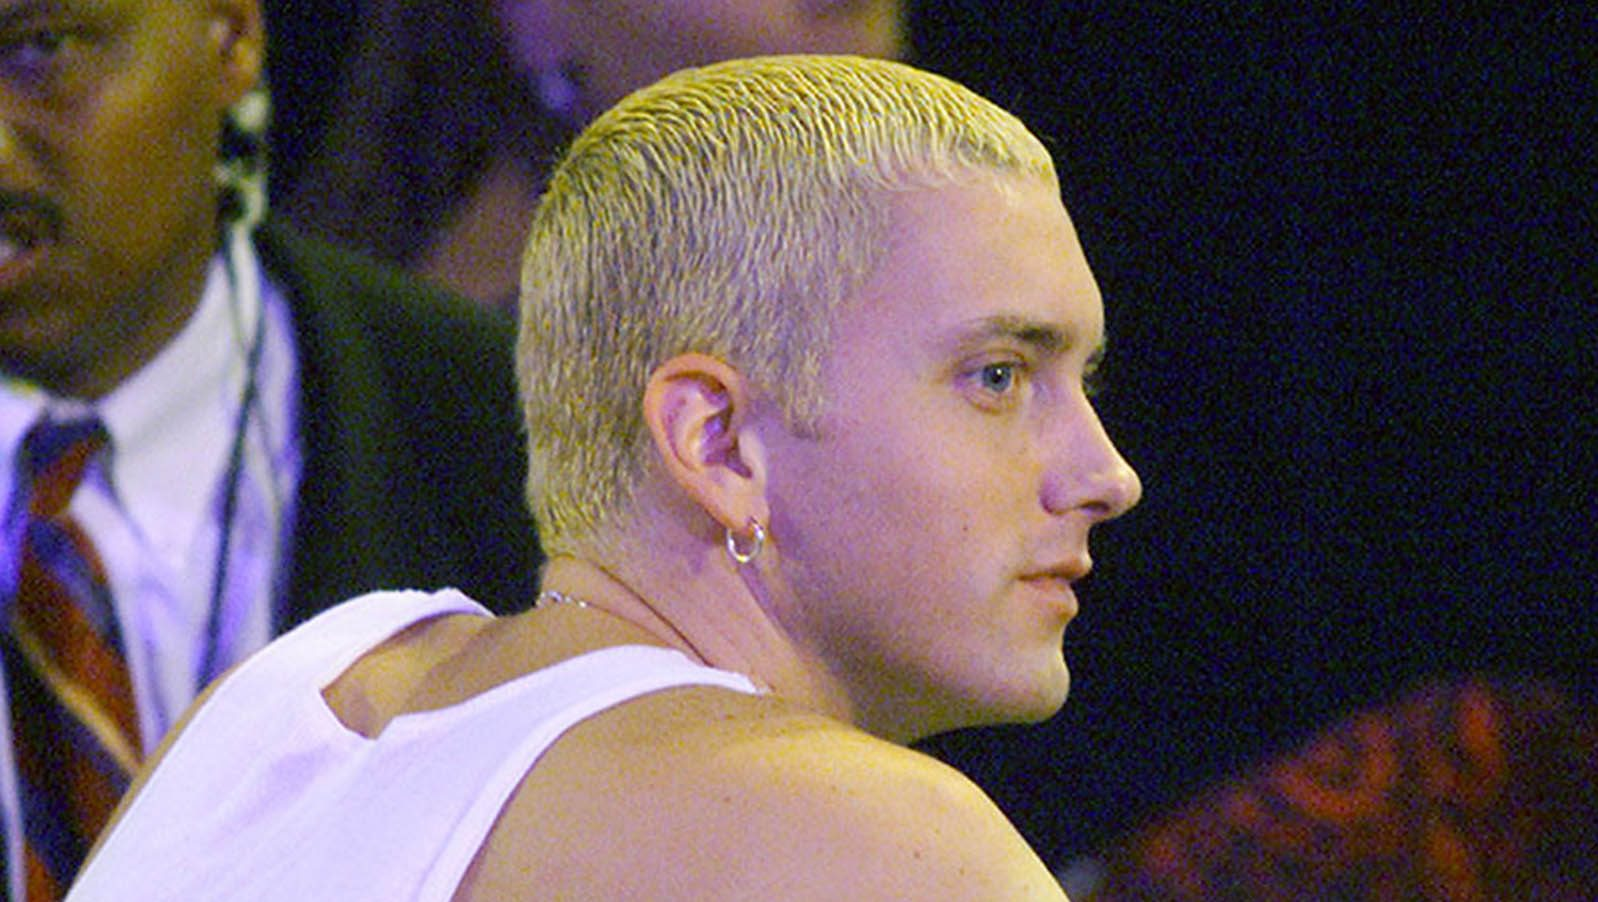 MMLP 20th Anniversary: Chat With Eminem Fans